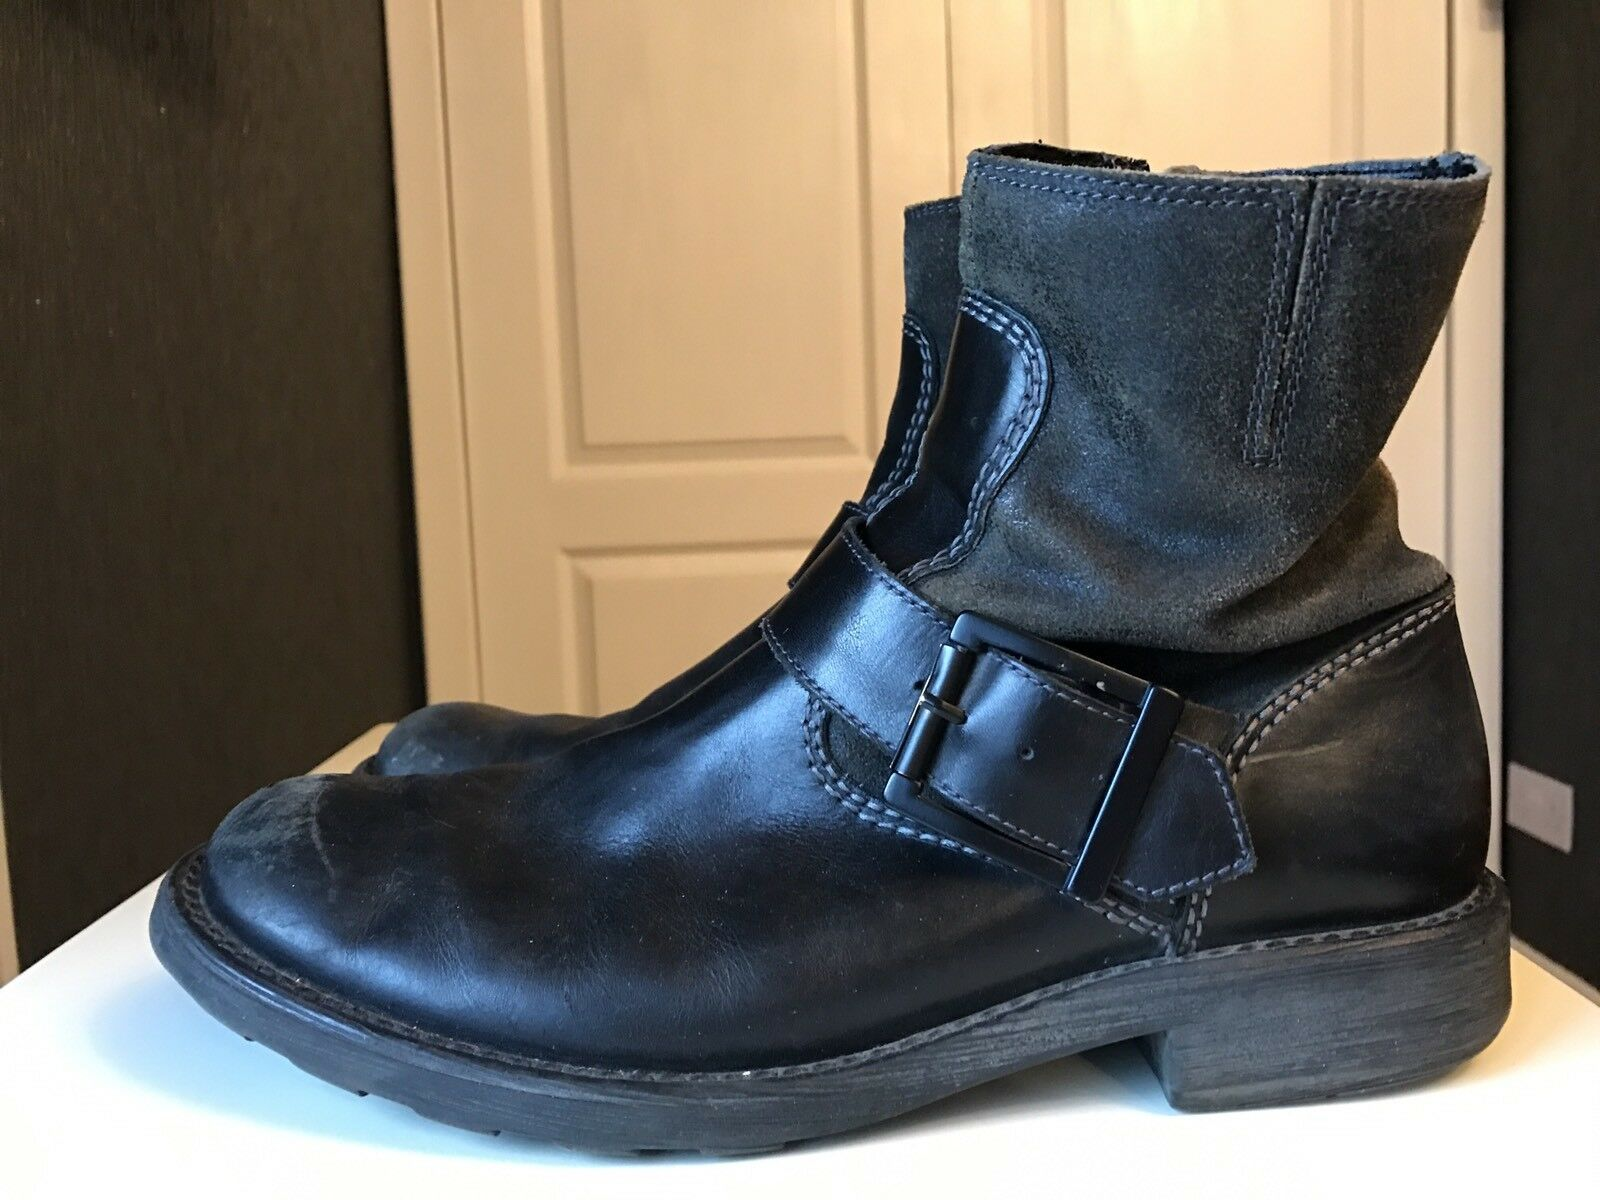 Kenneth Cole Reaction Uomo stivaletto Man Gent in pelle stivaletto Uomo scarpa di marca misura 8.5 eee613